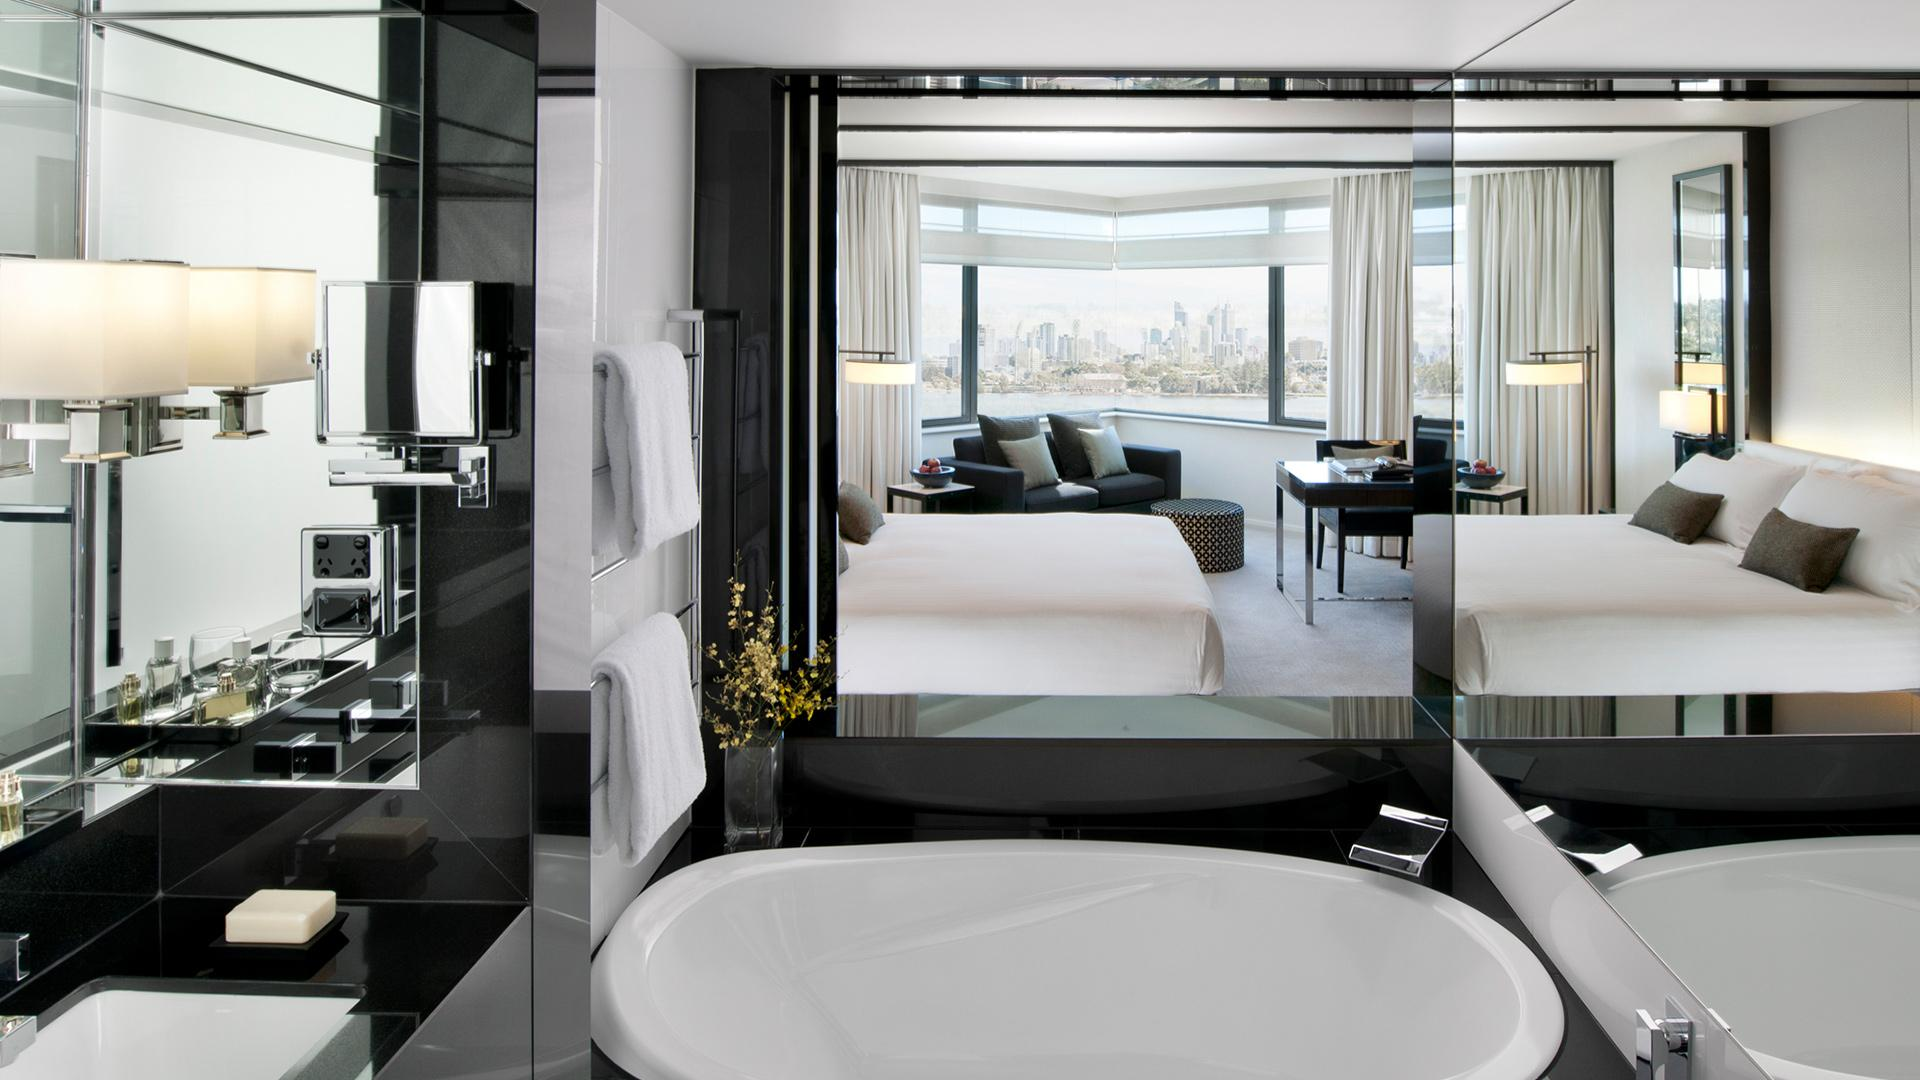 Luxe King Room image 1 at Crown Metropol Perth by Town of Victoria Park, Western Australia, Australia